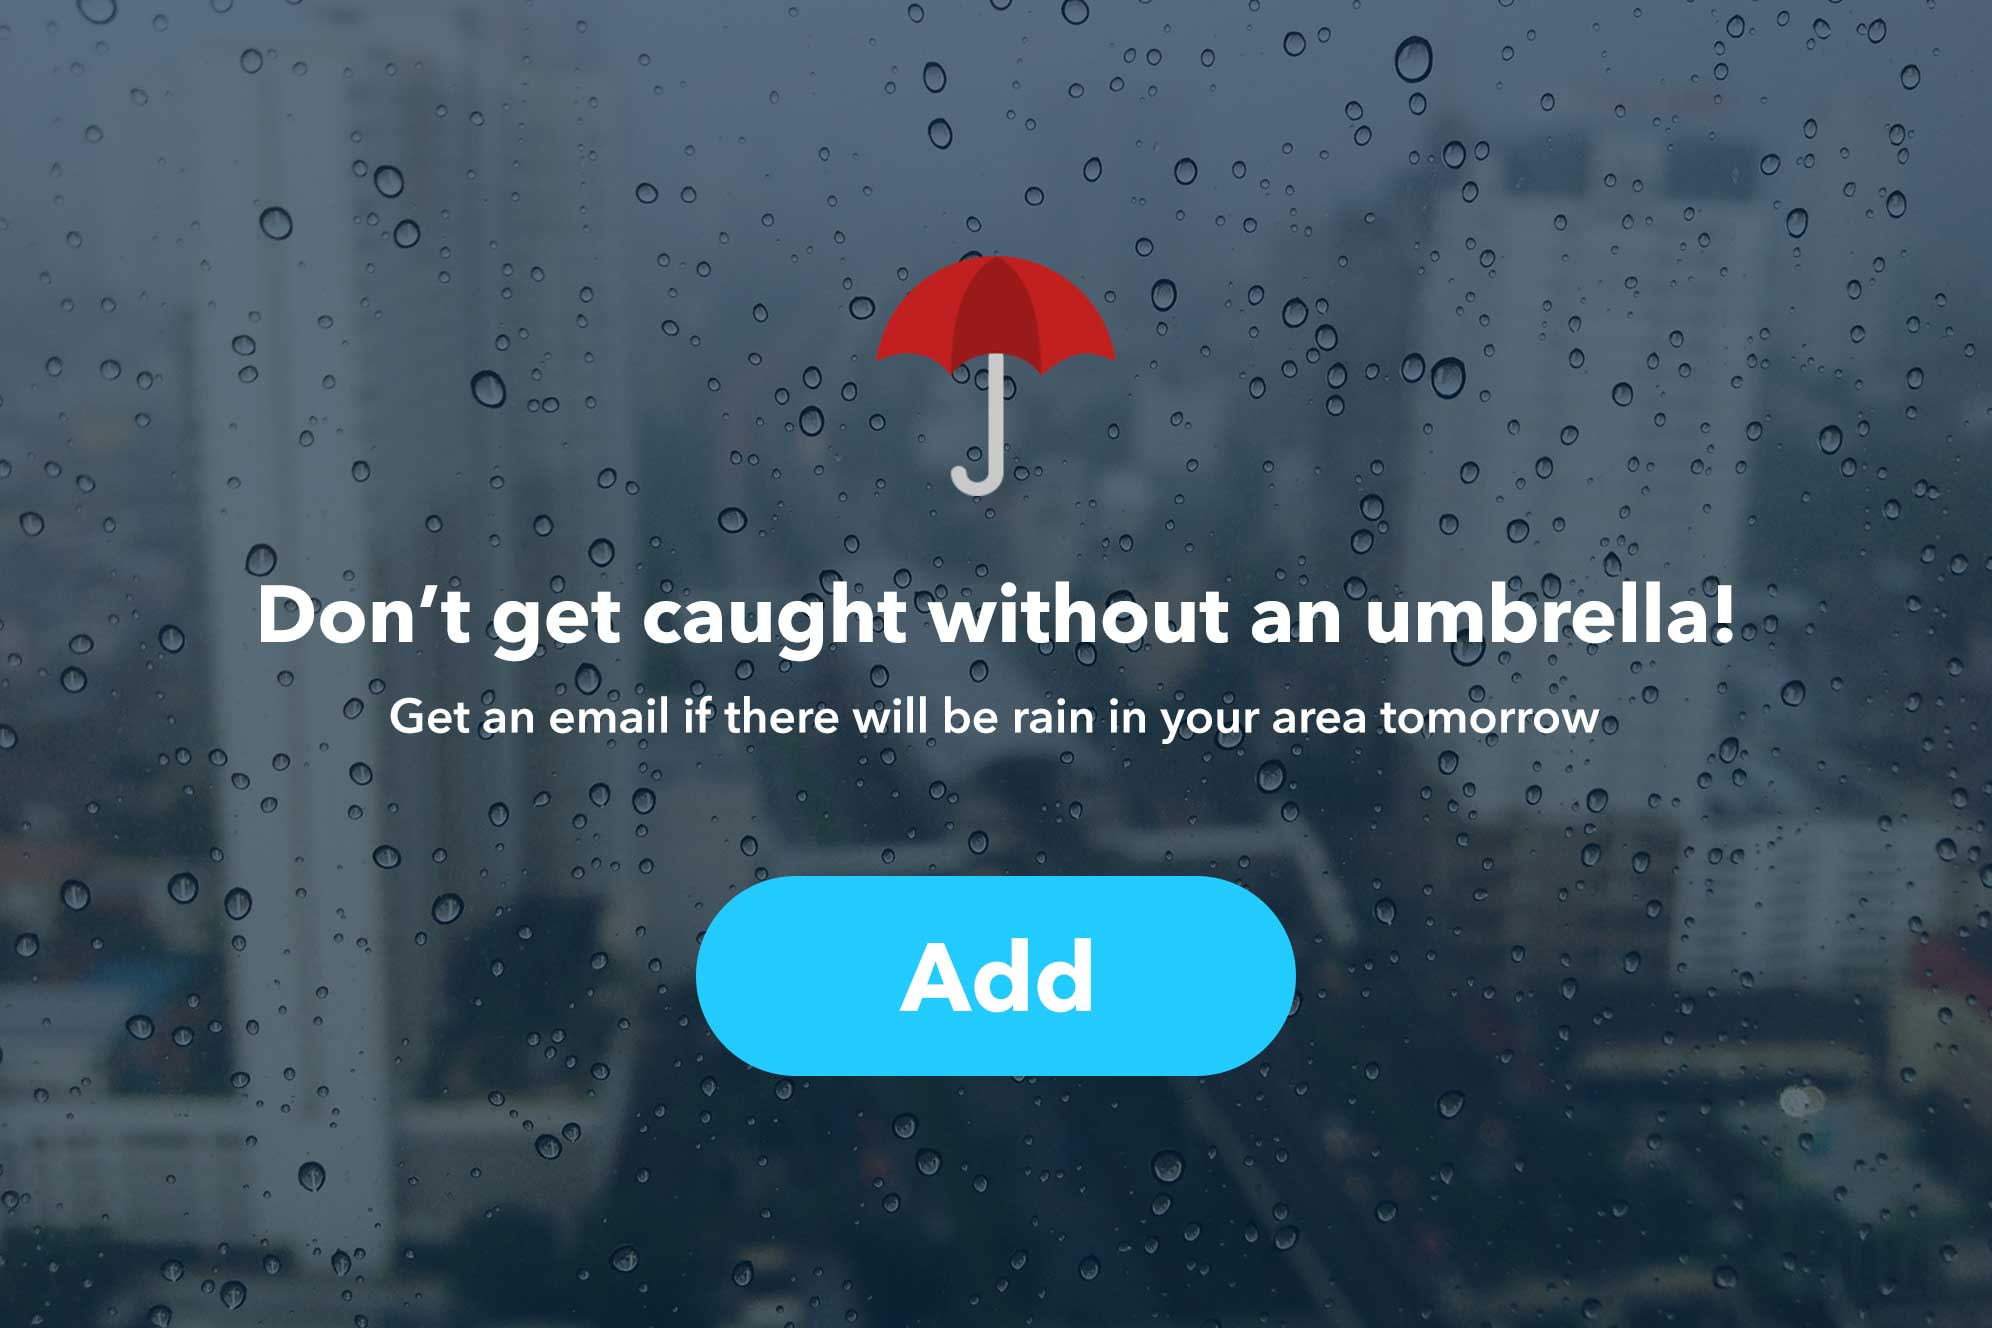 Don't get caught without an umbrella! Get an email if there will be rain in your area tomorrow